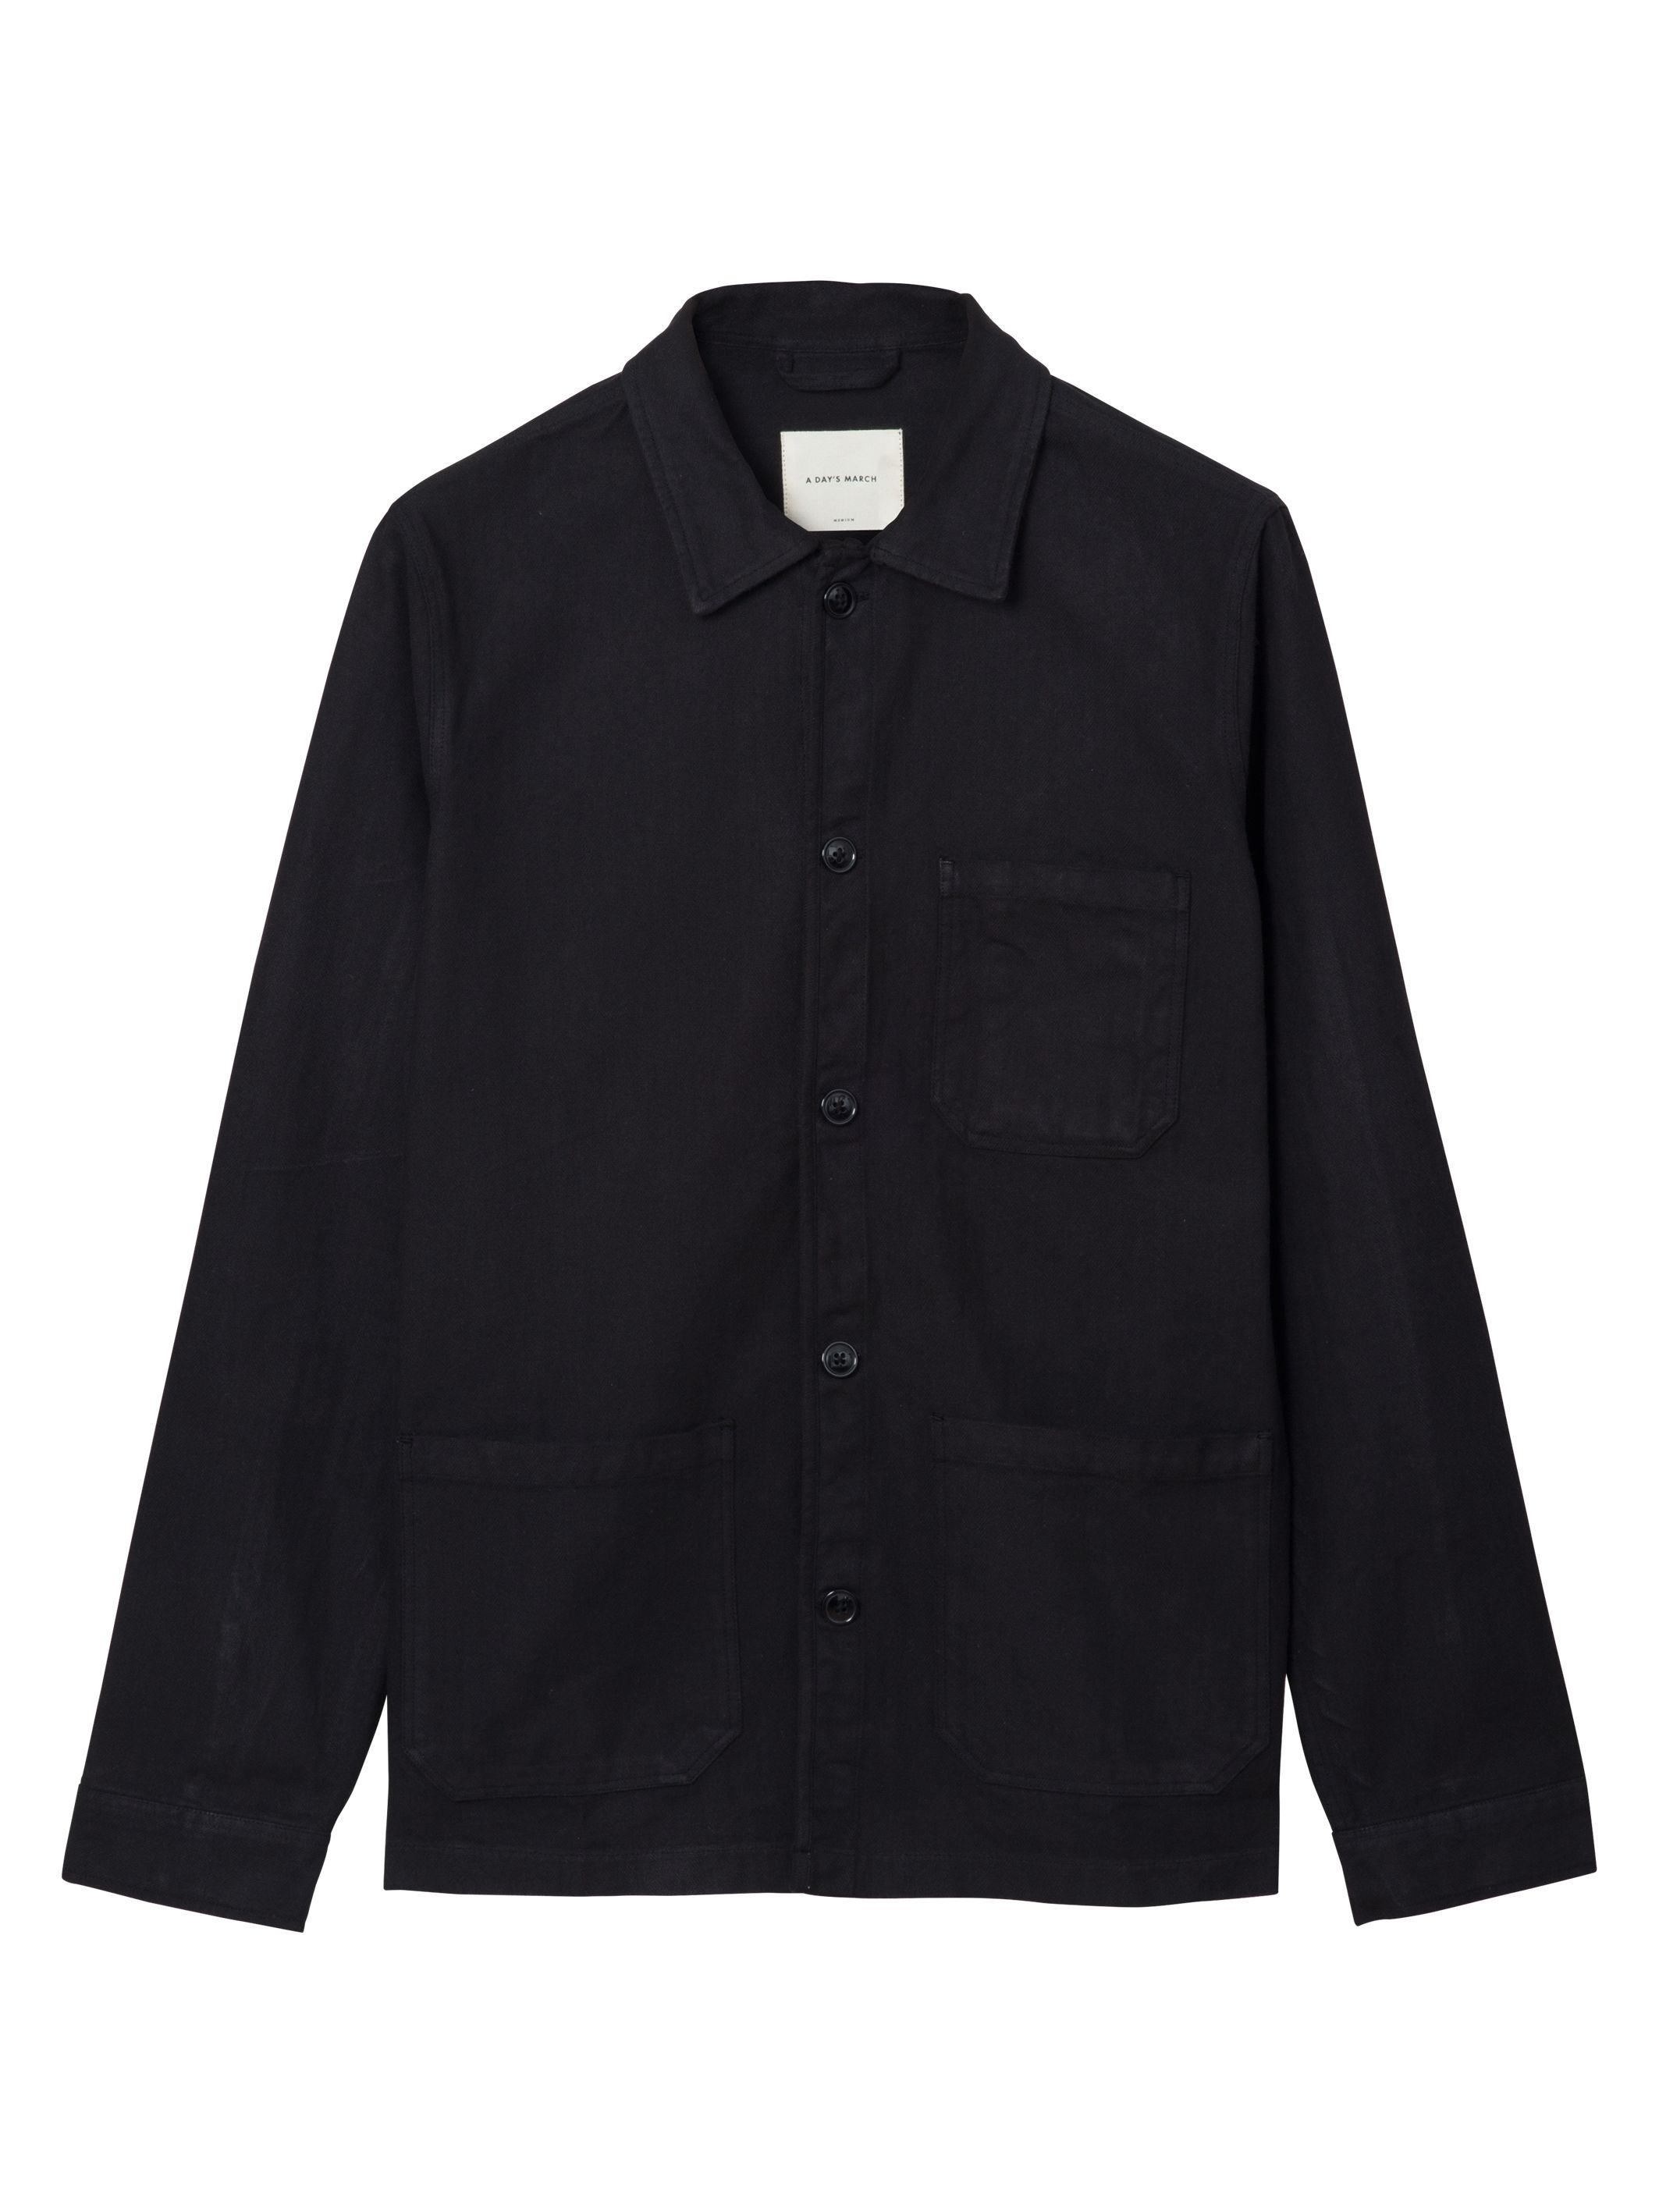 OVERSHIRT « A Day's March | Mode | Pinterest